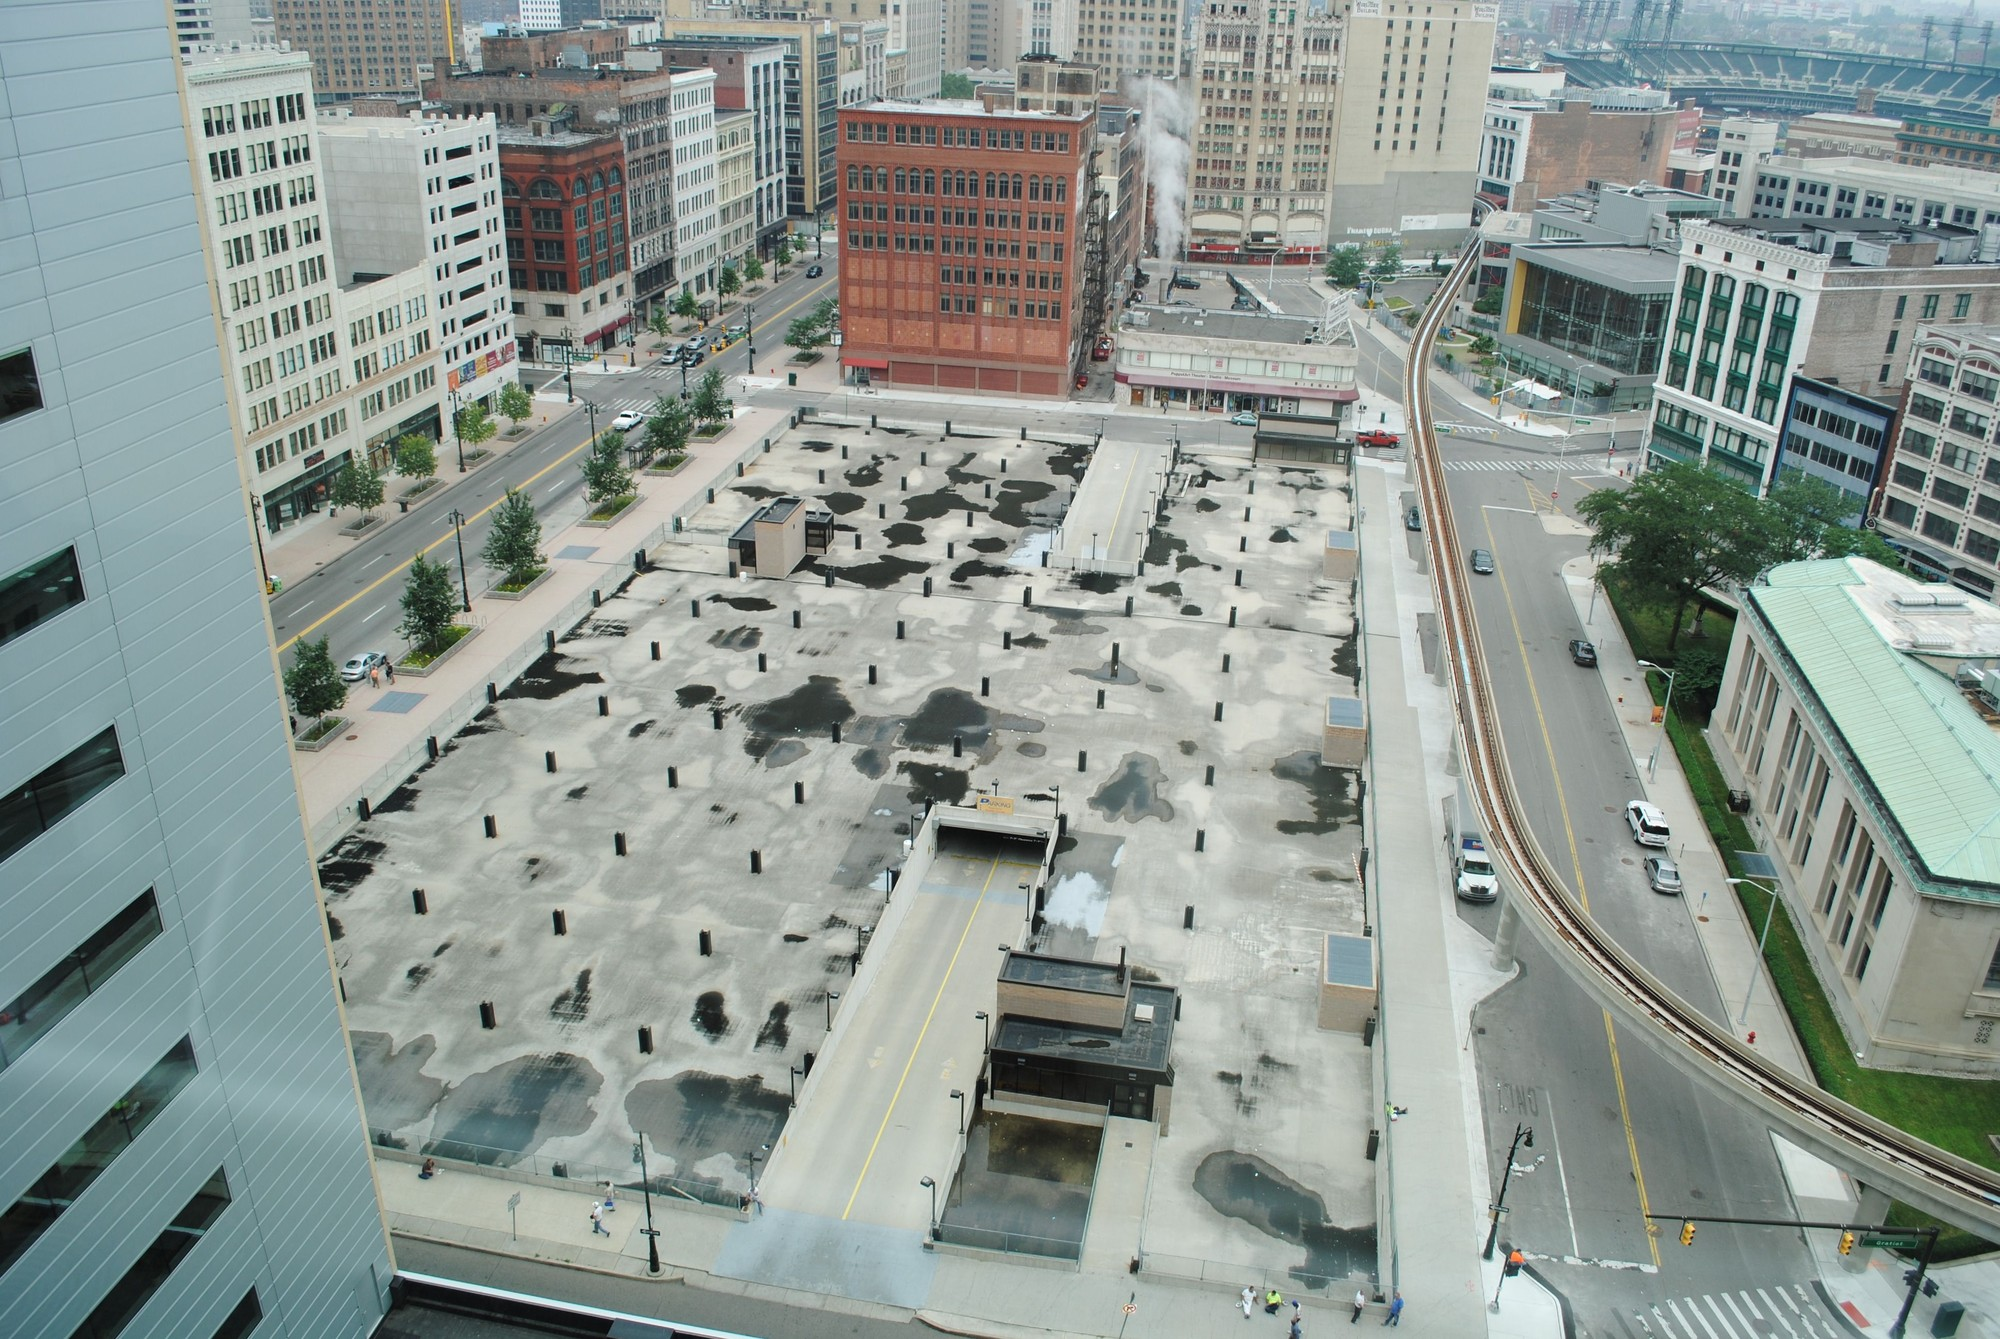 SHoP Architects Selected for Design of Iconic Site in Downtown Detroit, © Rock Ventures LLC